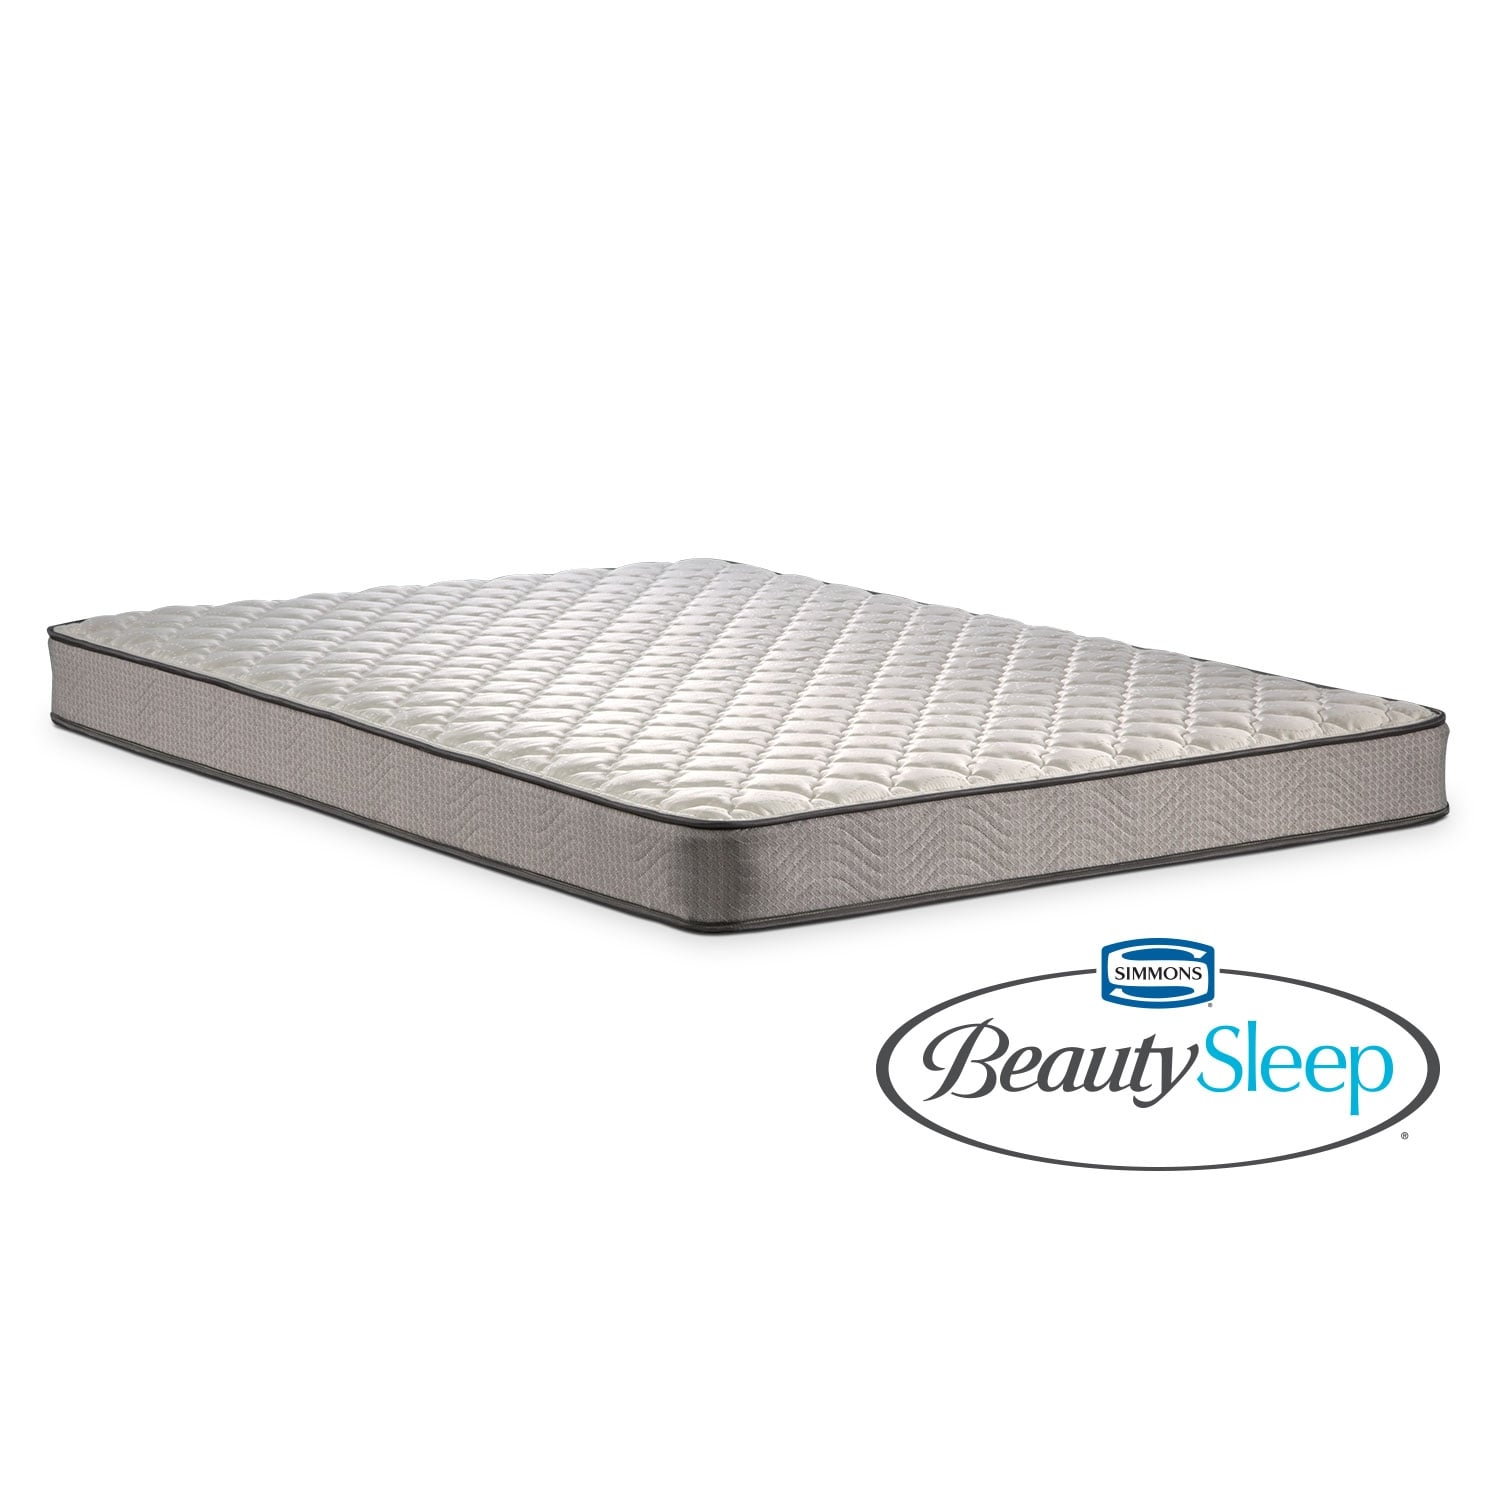 Mattresses and Bedding - Oakdale Full Mattress